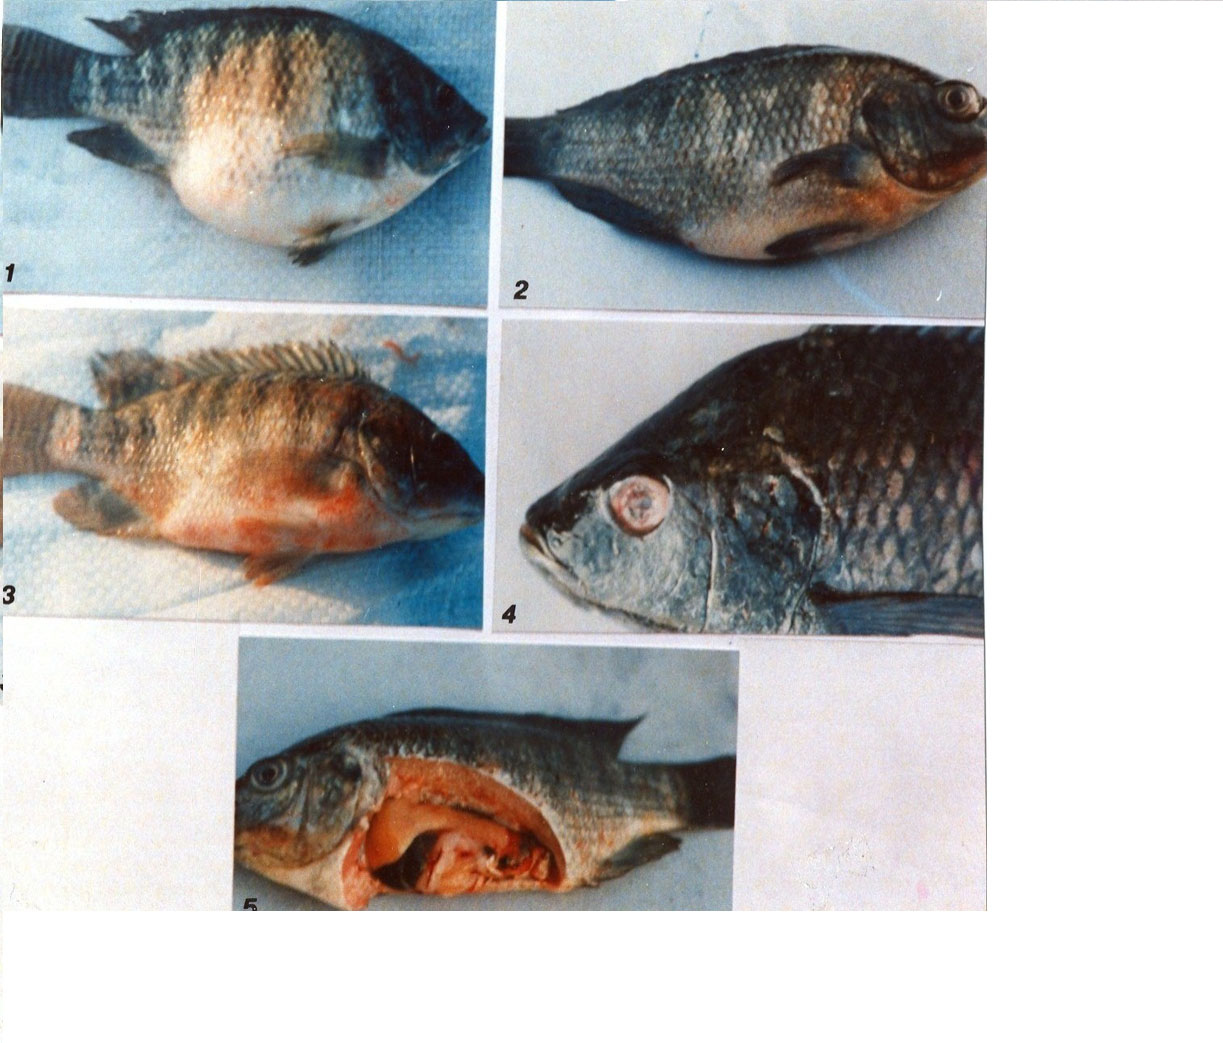 Rais regional aquaculture information system photo library for Septicemia in fish